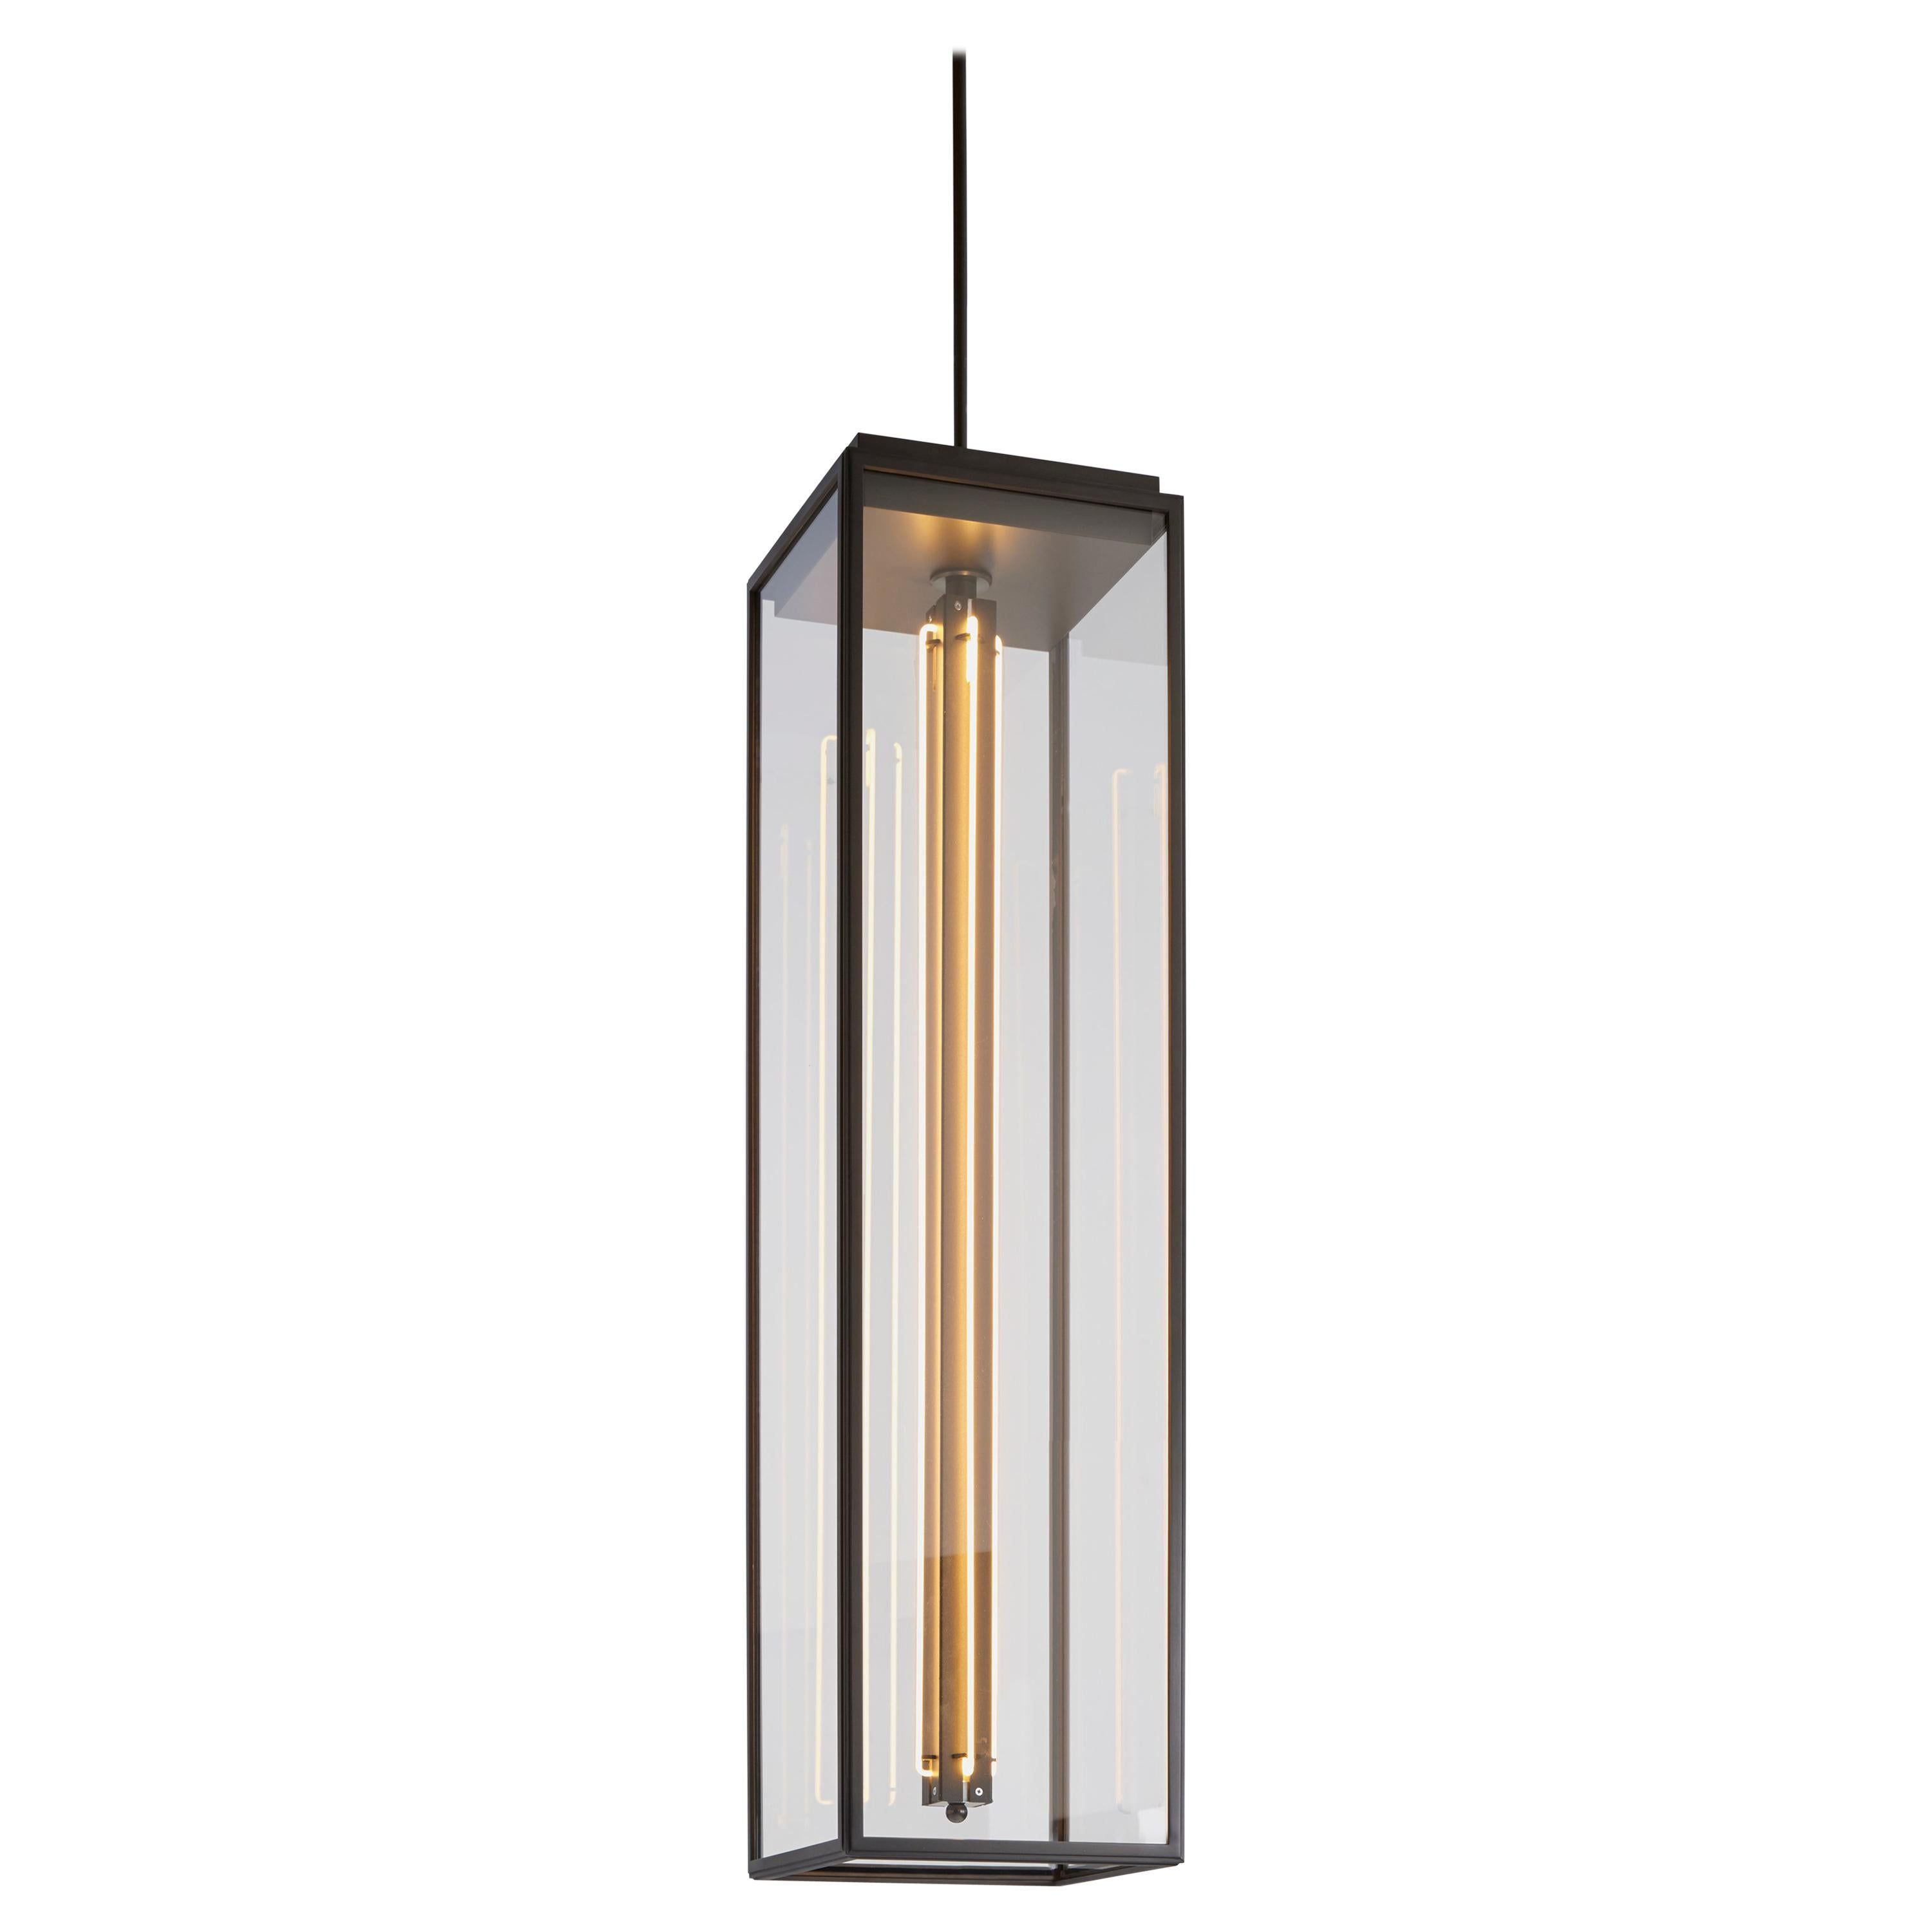 Tekna Ilford Pendant Extra Large Light with Dark Bronze Finish and Clear Glass